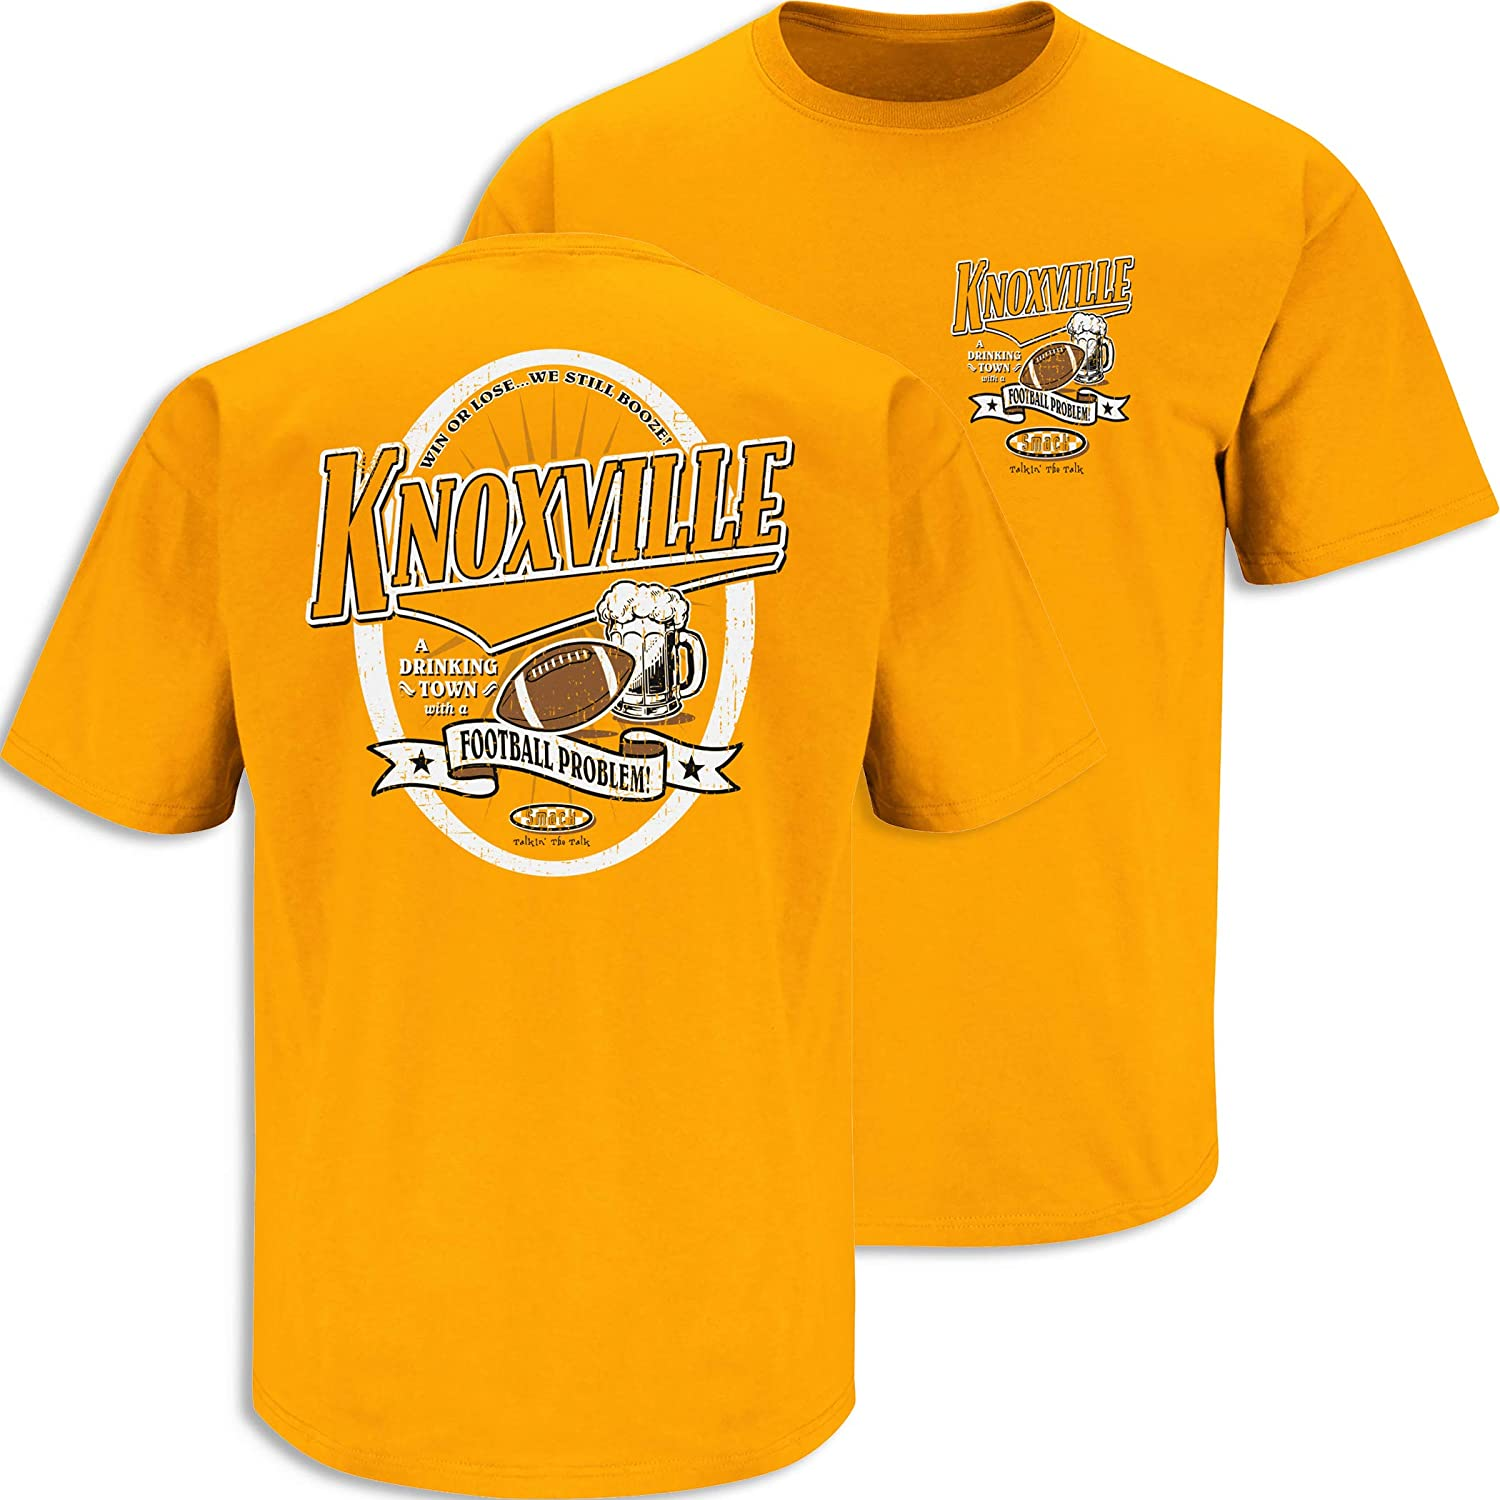 Smack Apparel Tennessee Football Fans Knoxville Drinking Town Orange T-Shirt Sm-5x